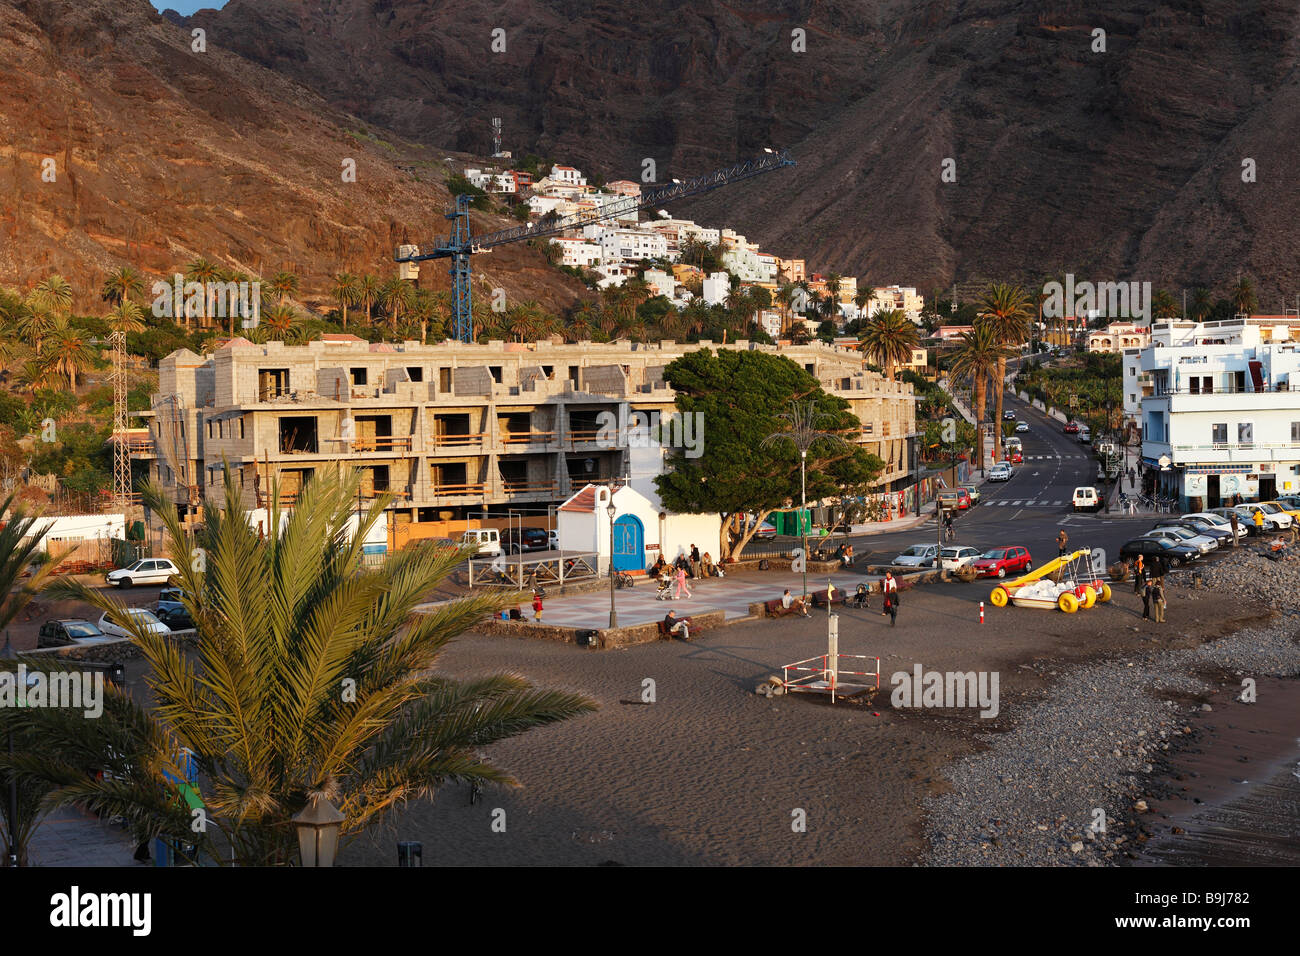 Building site at a hotel in La Playa, in the back La Calera, Valle Gran Rey, Canary Islands, Spain, Europe - Stock Image